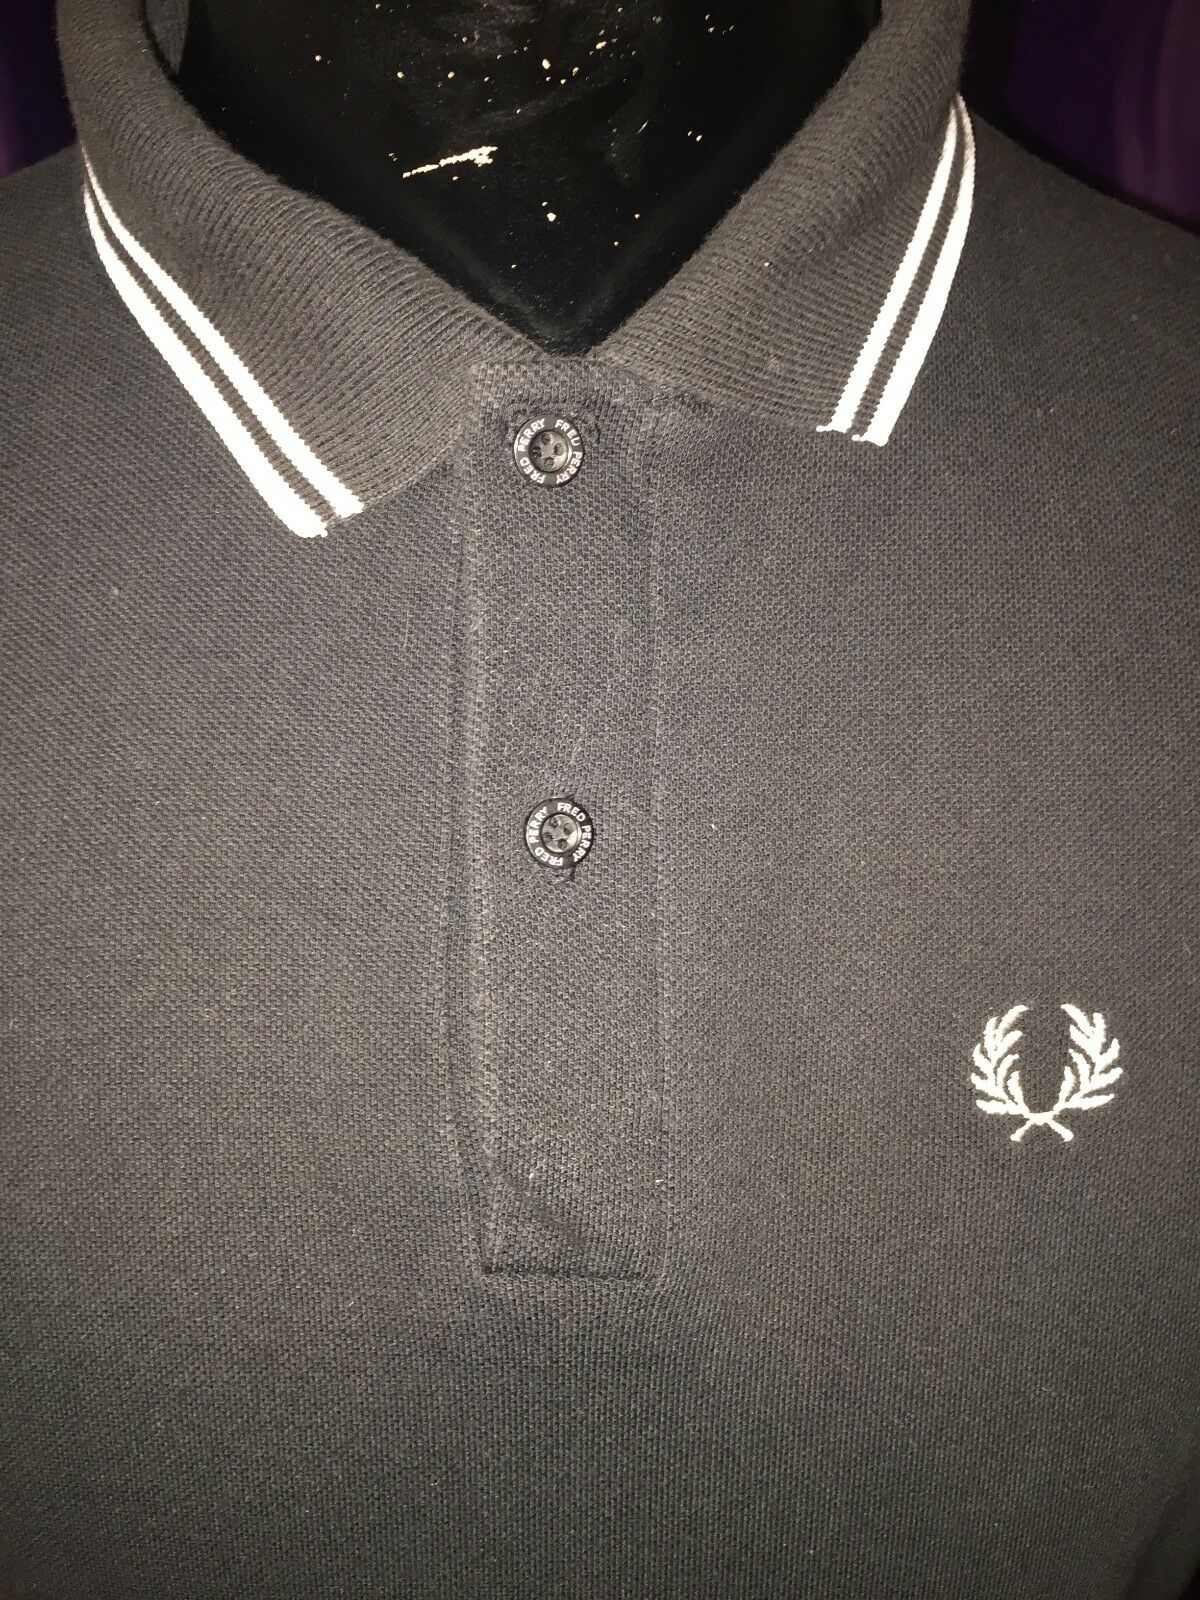 Fred Perry L & XL T-shirts View Factory 3 shirts one price